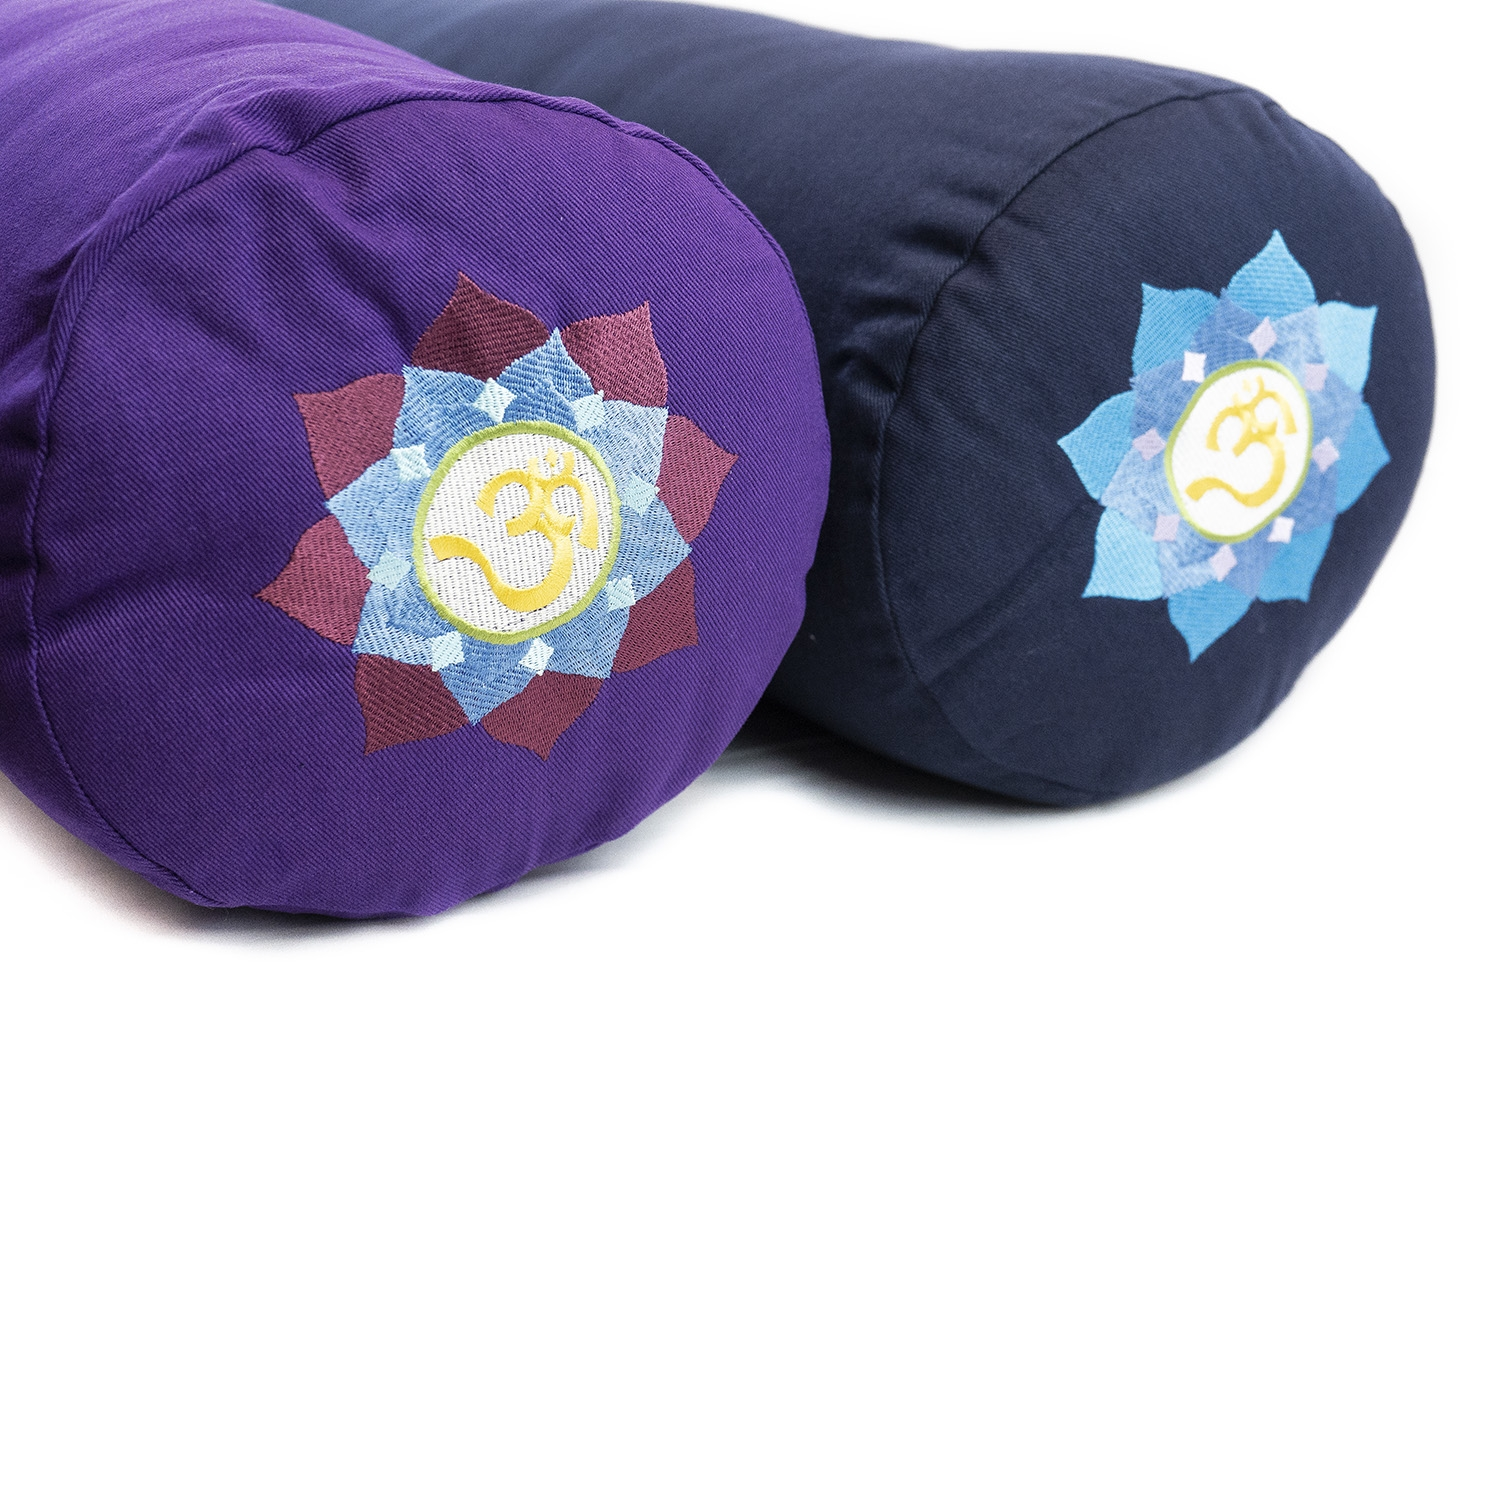 Embroidered Round Supportive Cotton Yoga Bolster